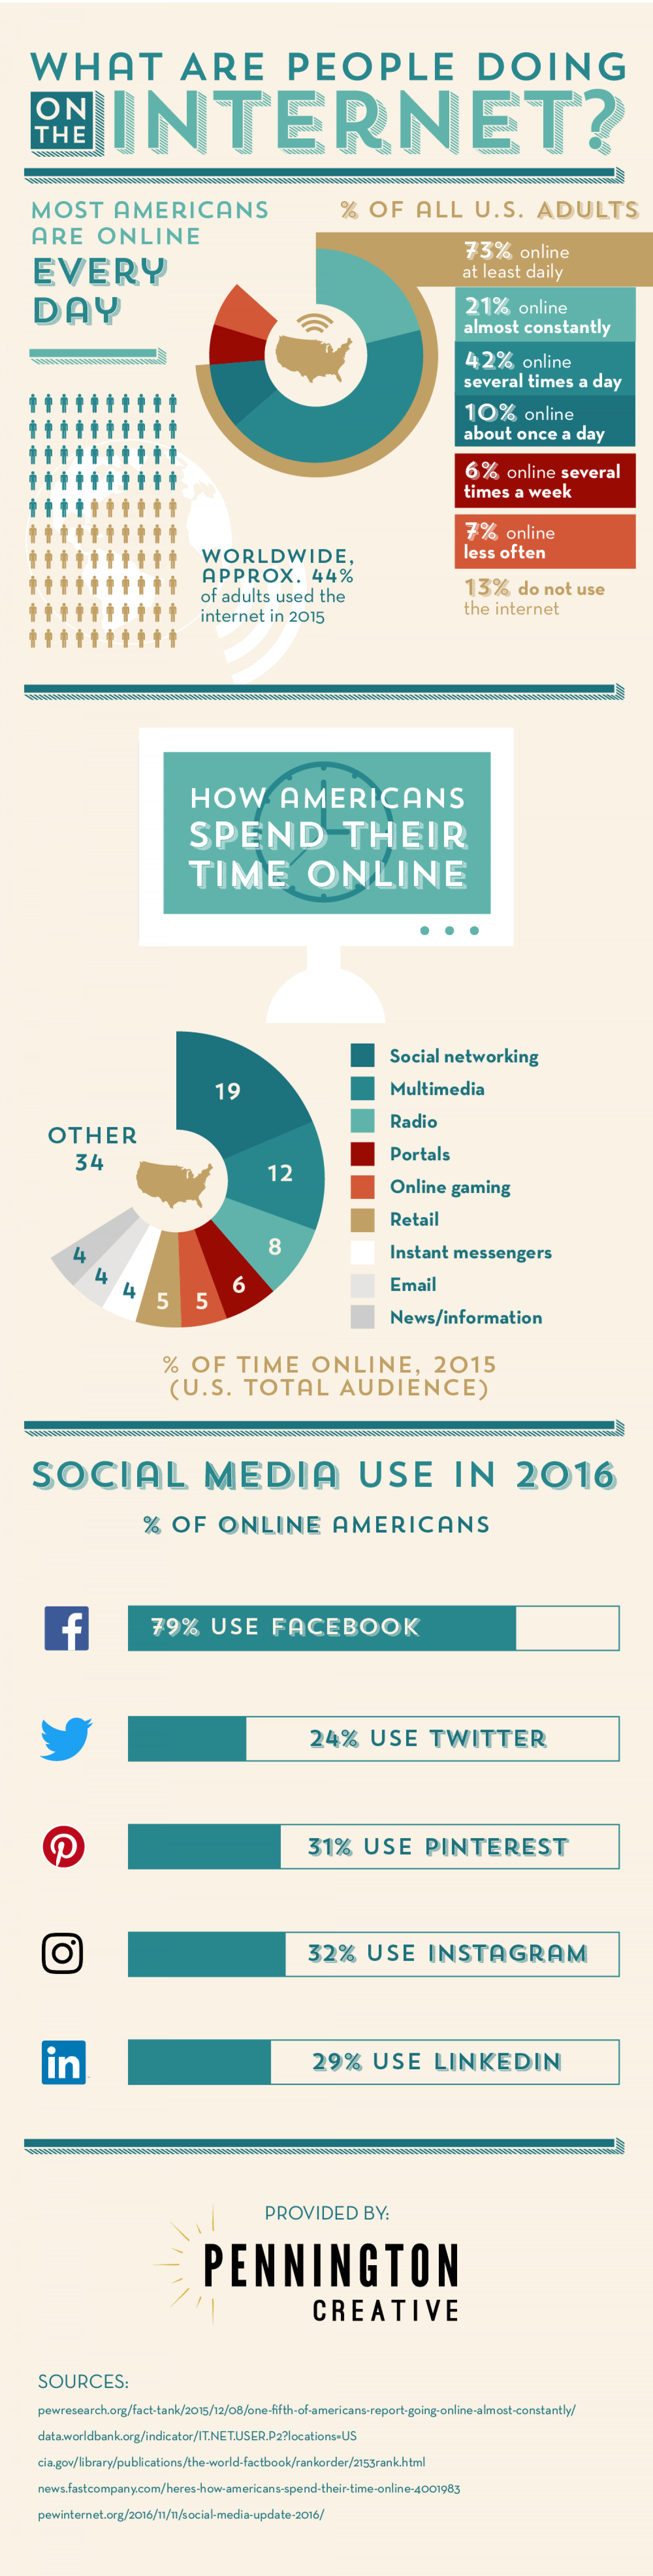 What Are People Doing On the Internet? Infographic